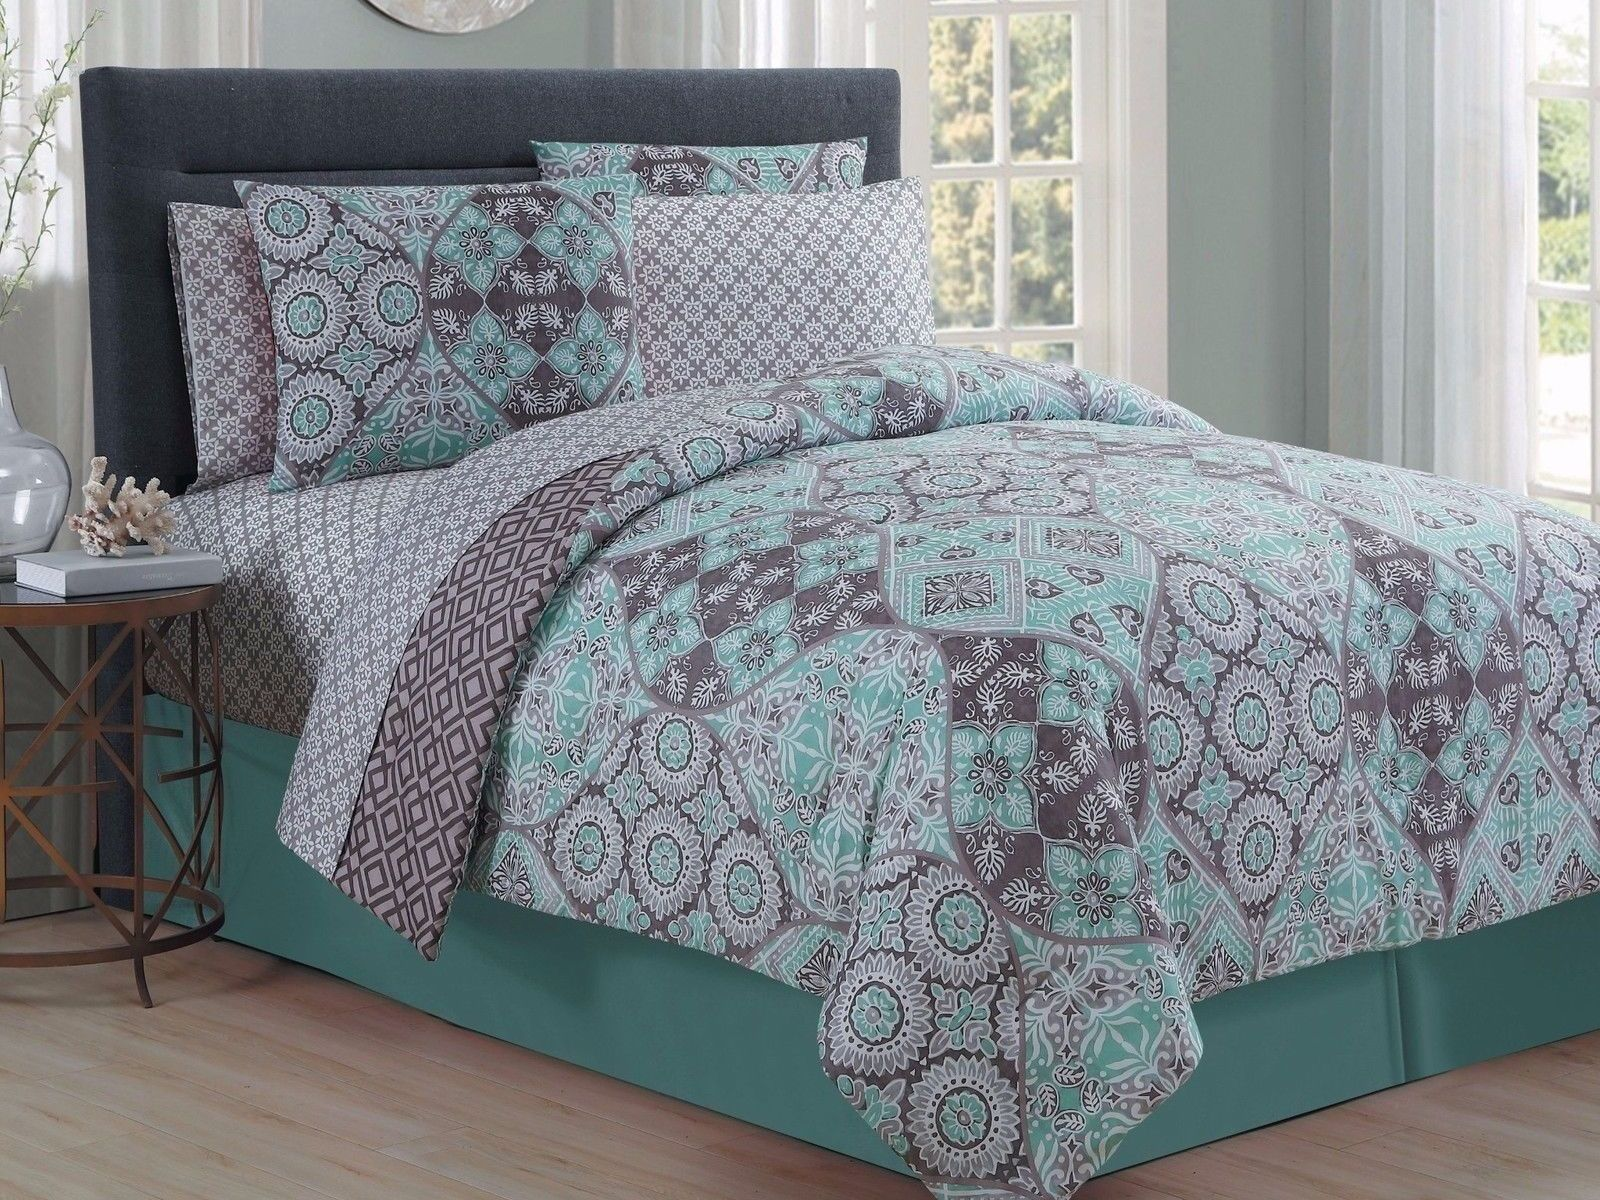 on bedding coastal regarding green chic mist with bedroom set aqua comforter seafoam mint antigua fine